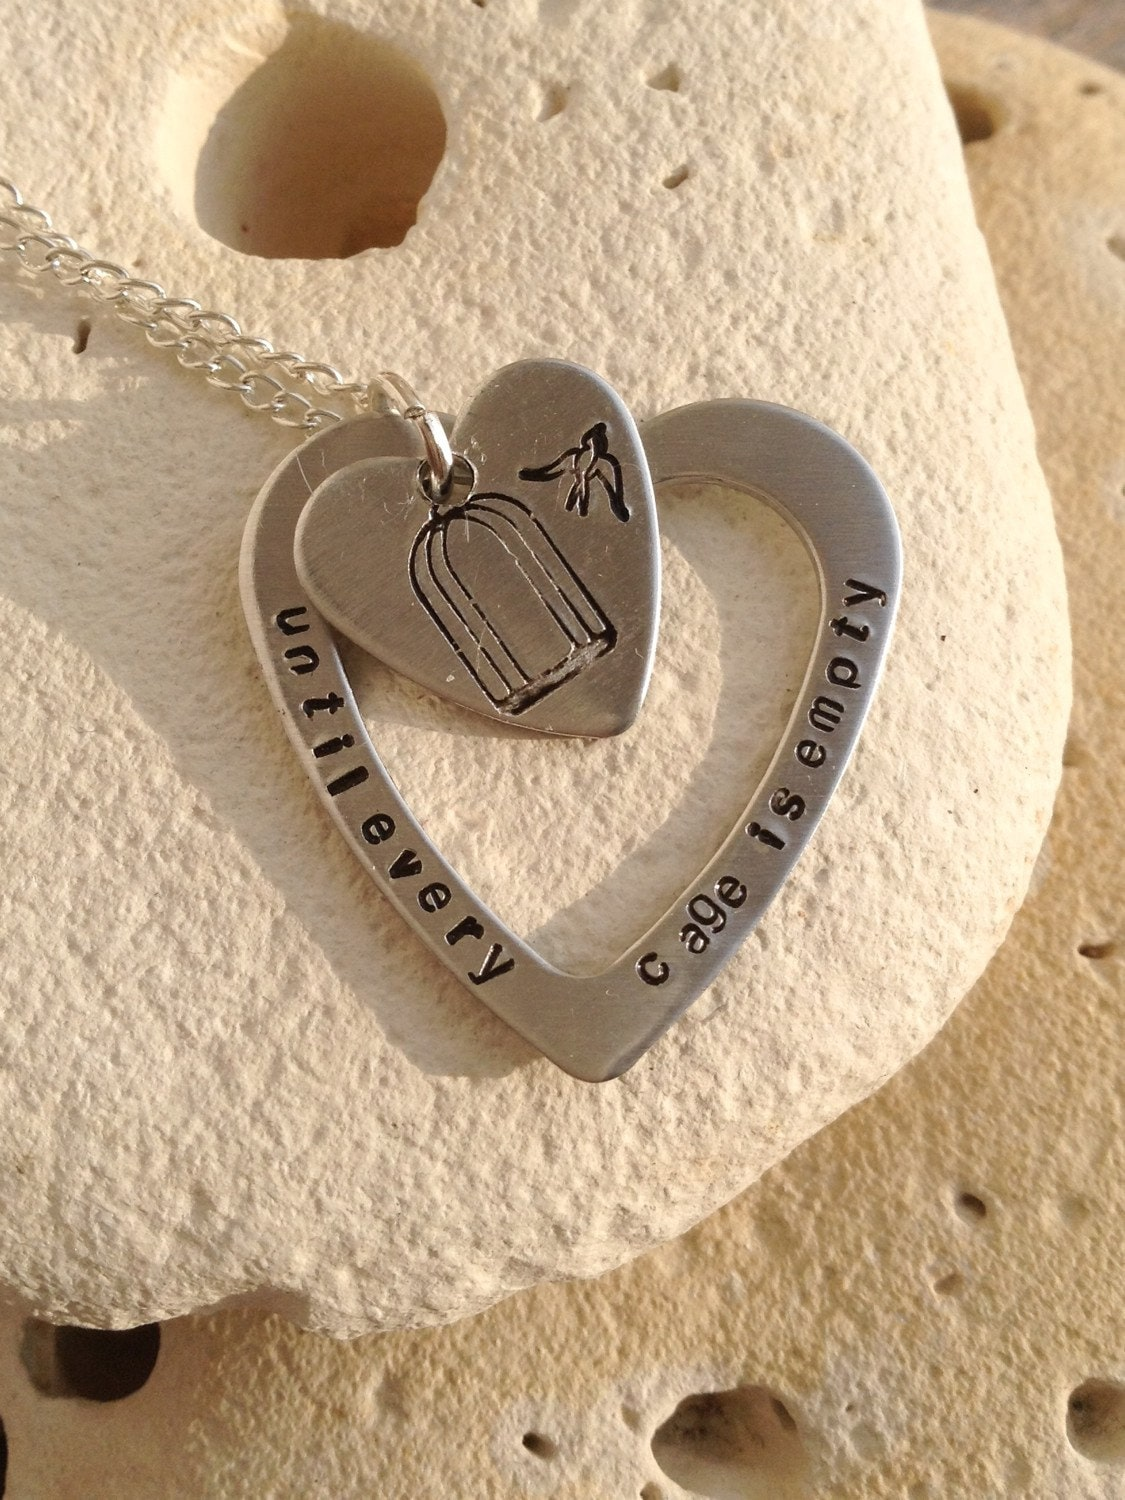 Vegan necklace, vegan jewelry, until every cage is empty, animal rights, handstamped heart washer and heart pendant on 18